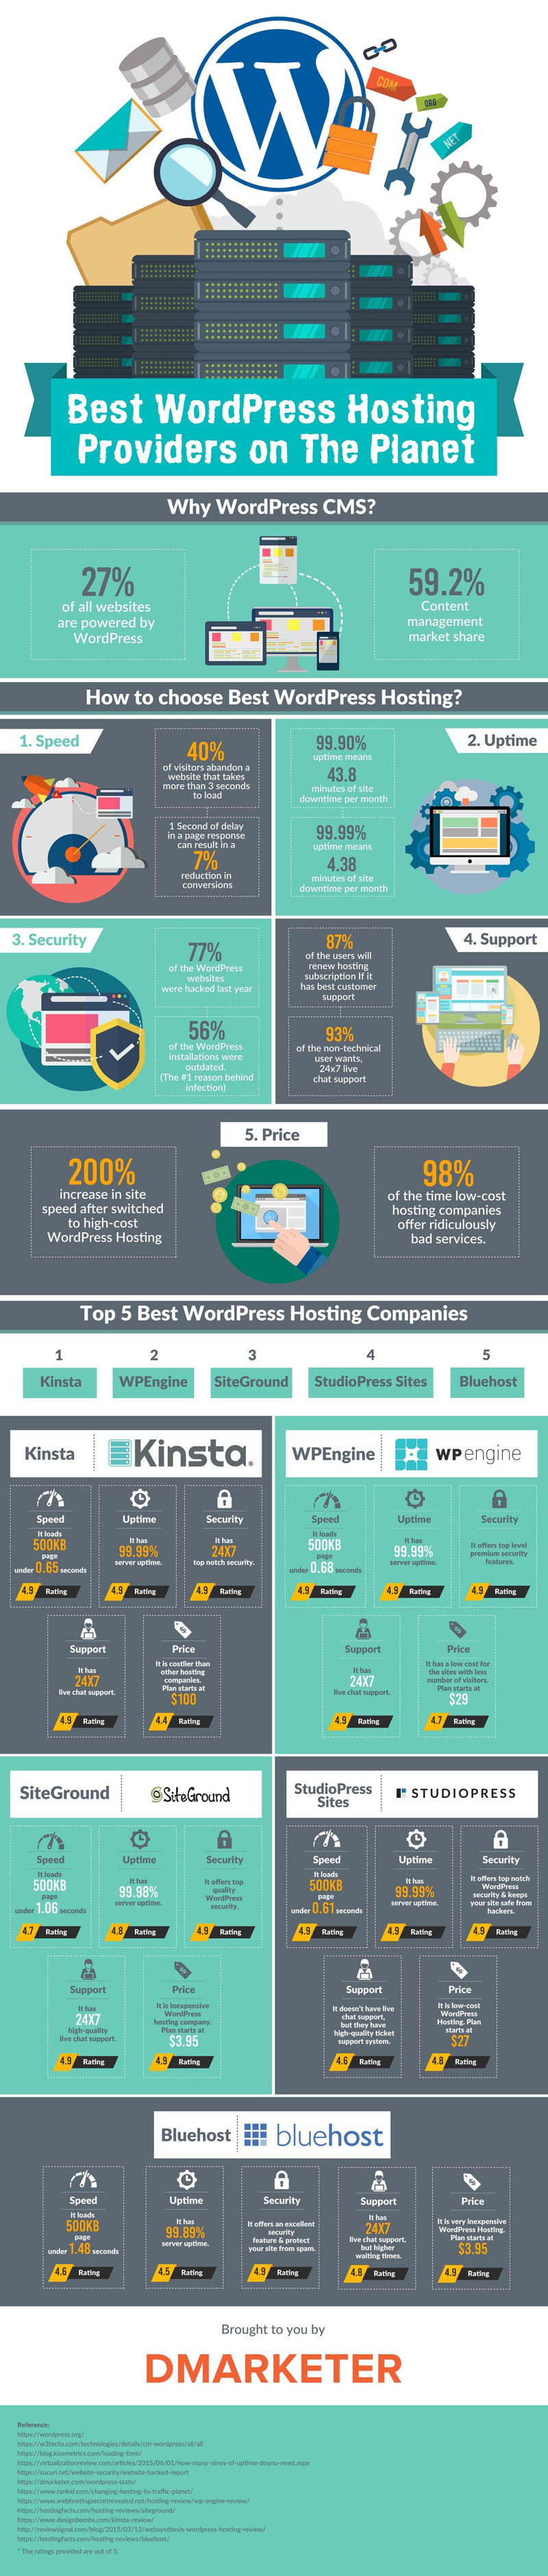 Infographic Best Wordpress Hosting Companies. Church Security Systems Total Acne Treatments. Medical Office Computer Programs. Crossroads Treatment Center Asheville Nc. Illinois Injury Lawyers Cost Of Hiring Movers. Video Security Monitoring San Jose Counseling. Appliance Repair Athens Ga E College Devry. Replace Water Heater With Tankless. Www West Georgia Technical College